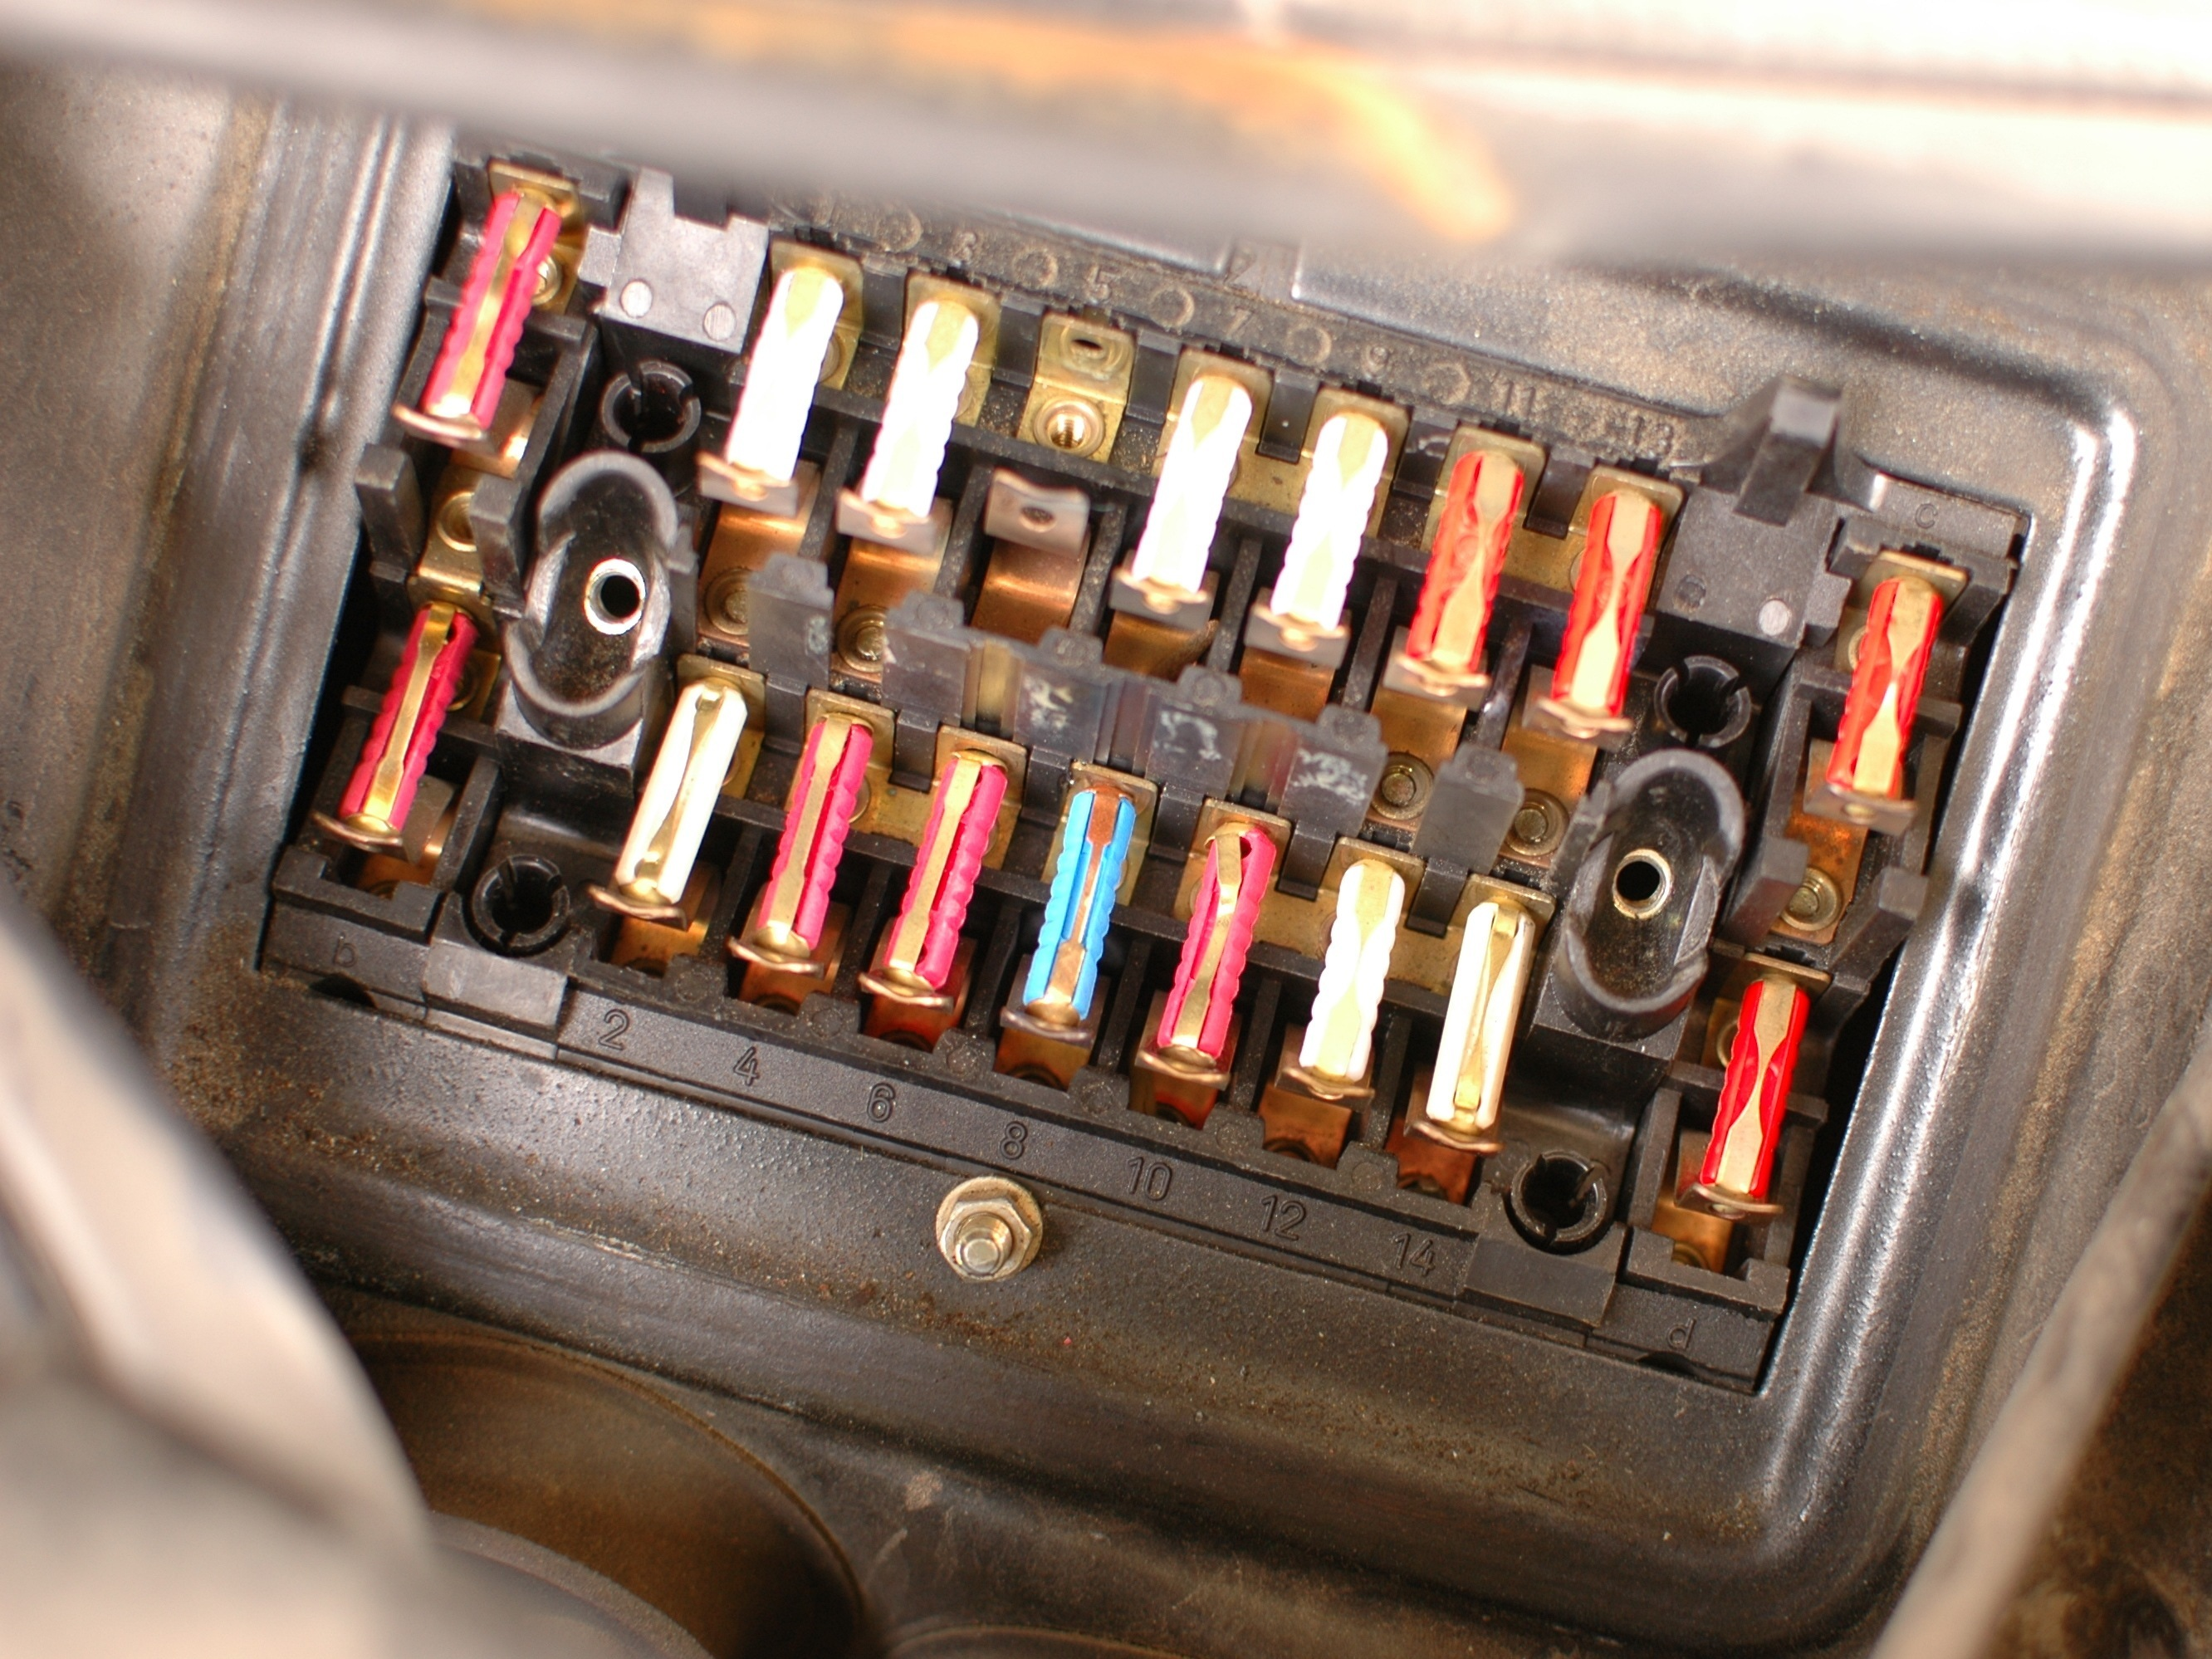 AfYAfmoCaMTVU2ap how to check mercedes w123 fuses ifixit 1978 Mercedes 450SEL at readyjetset.co